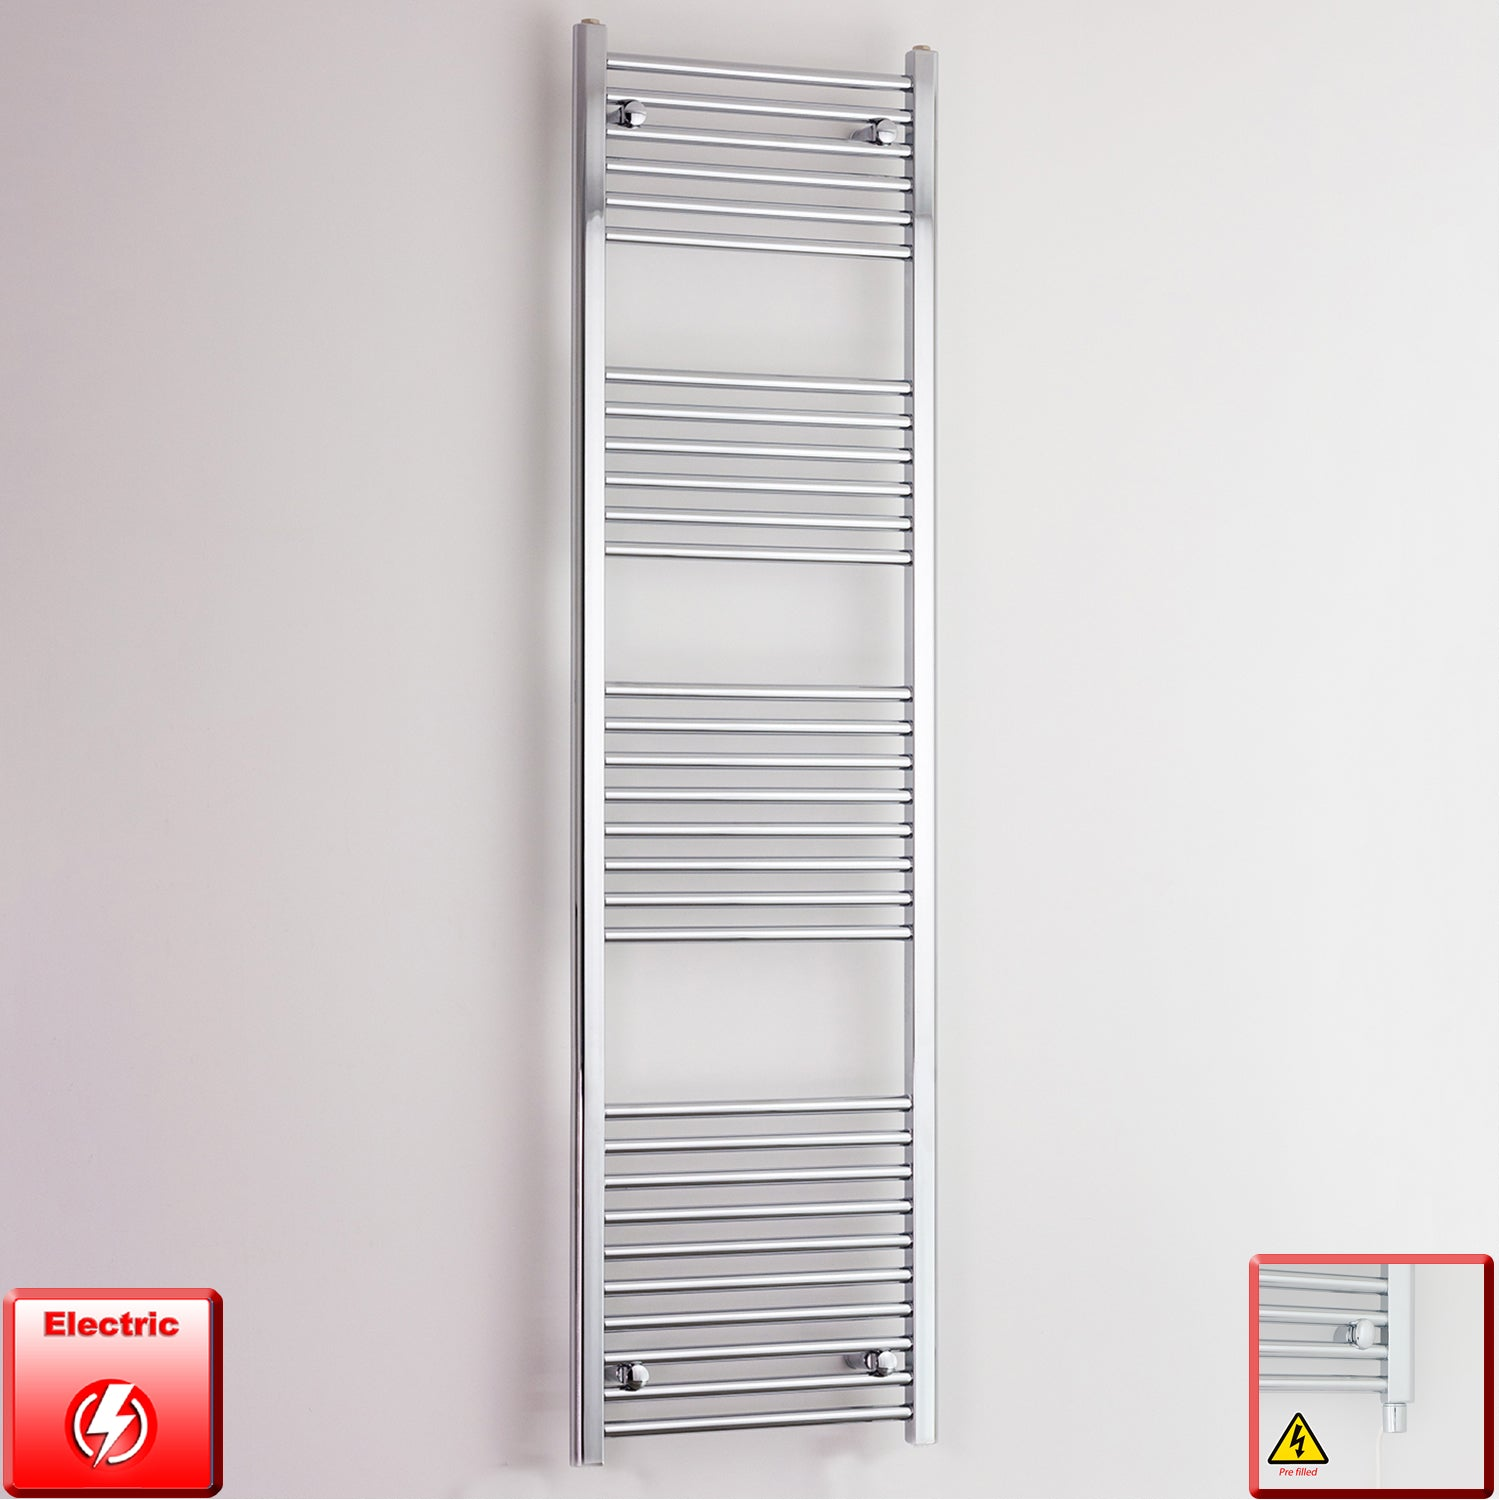 500mm Wide 1800mm High Flat Or Curved Chrome Pre-Filled Electric Heated Towel Rail Radiator HTR,Straight / Single Heat Element